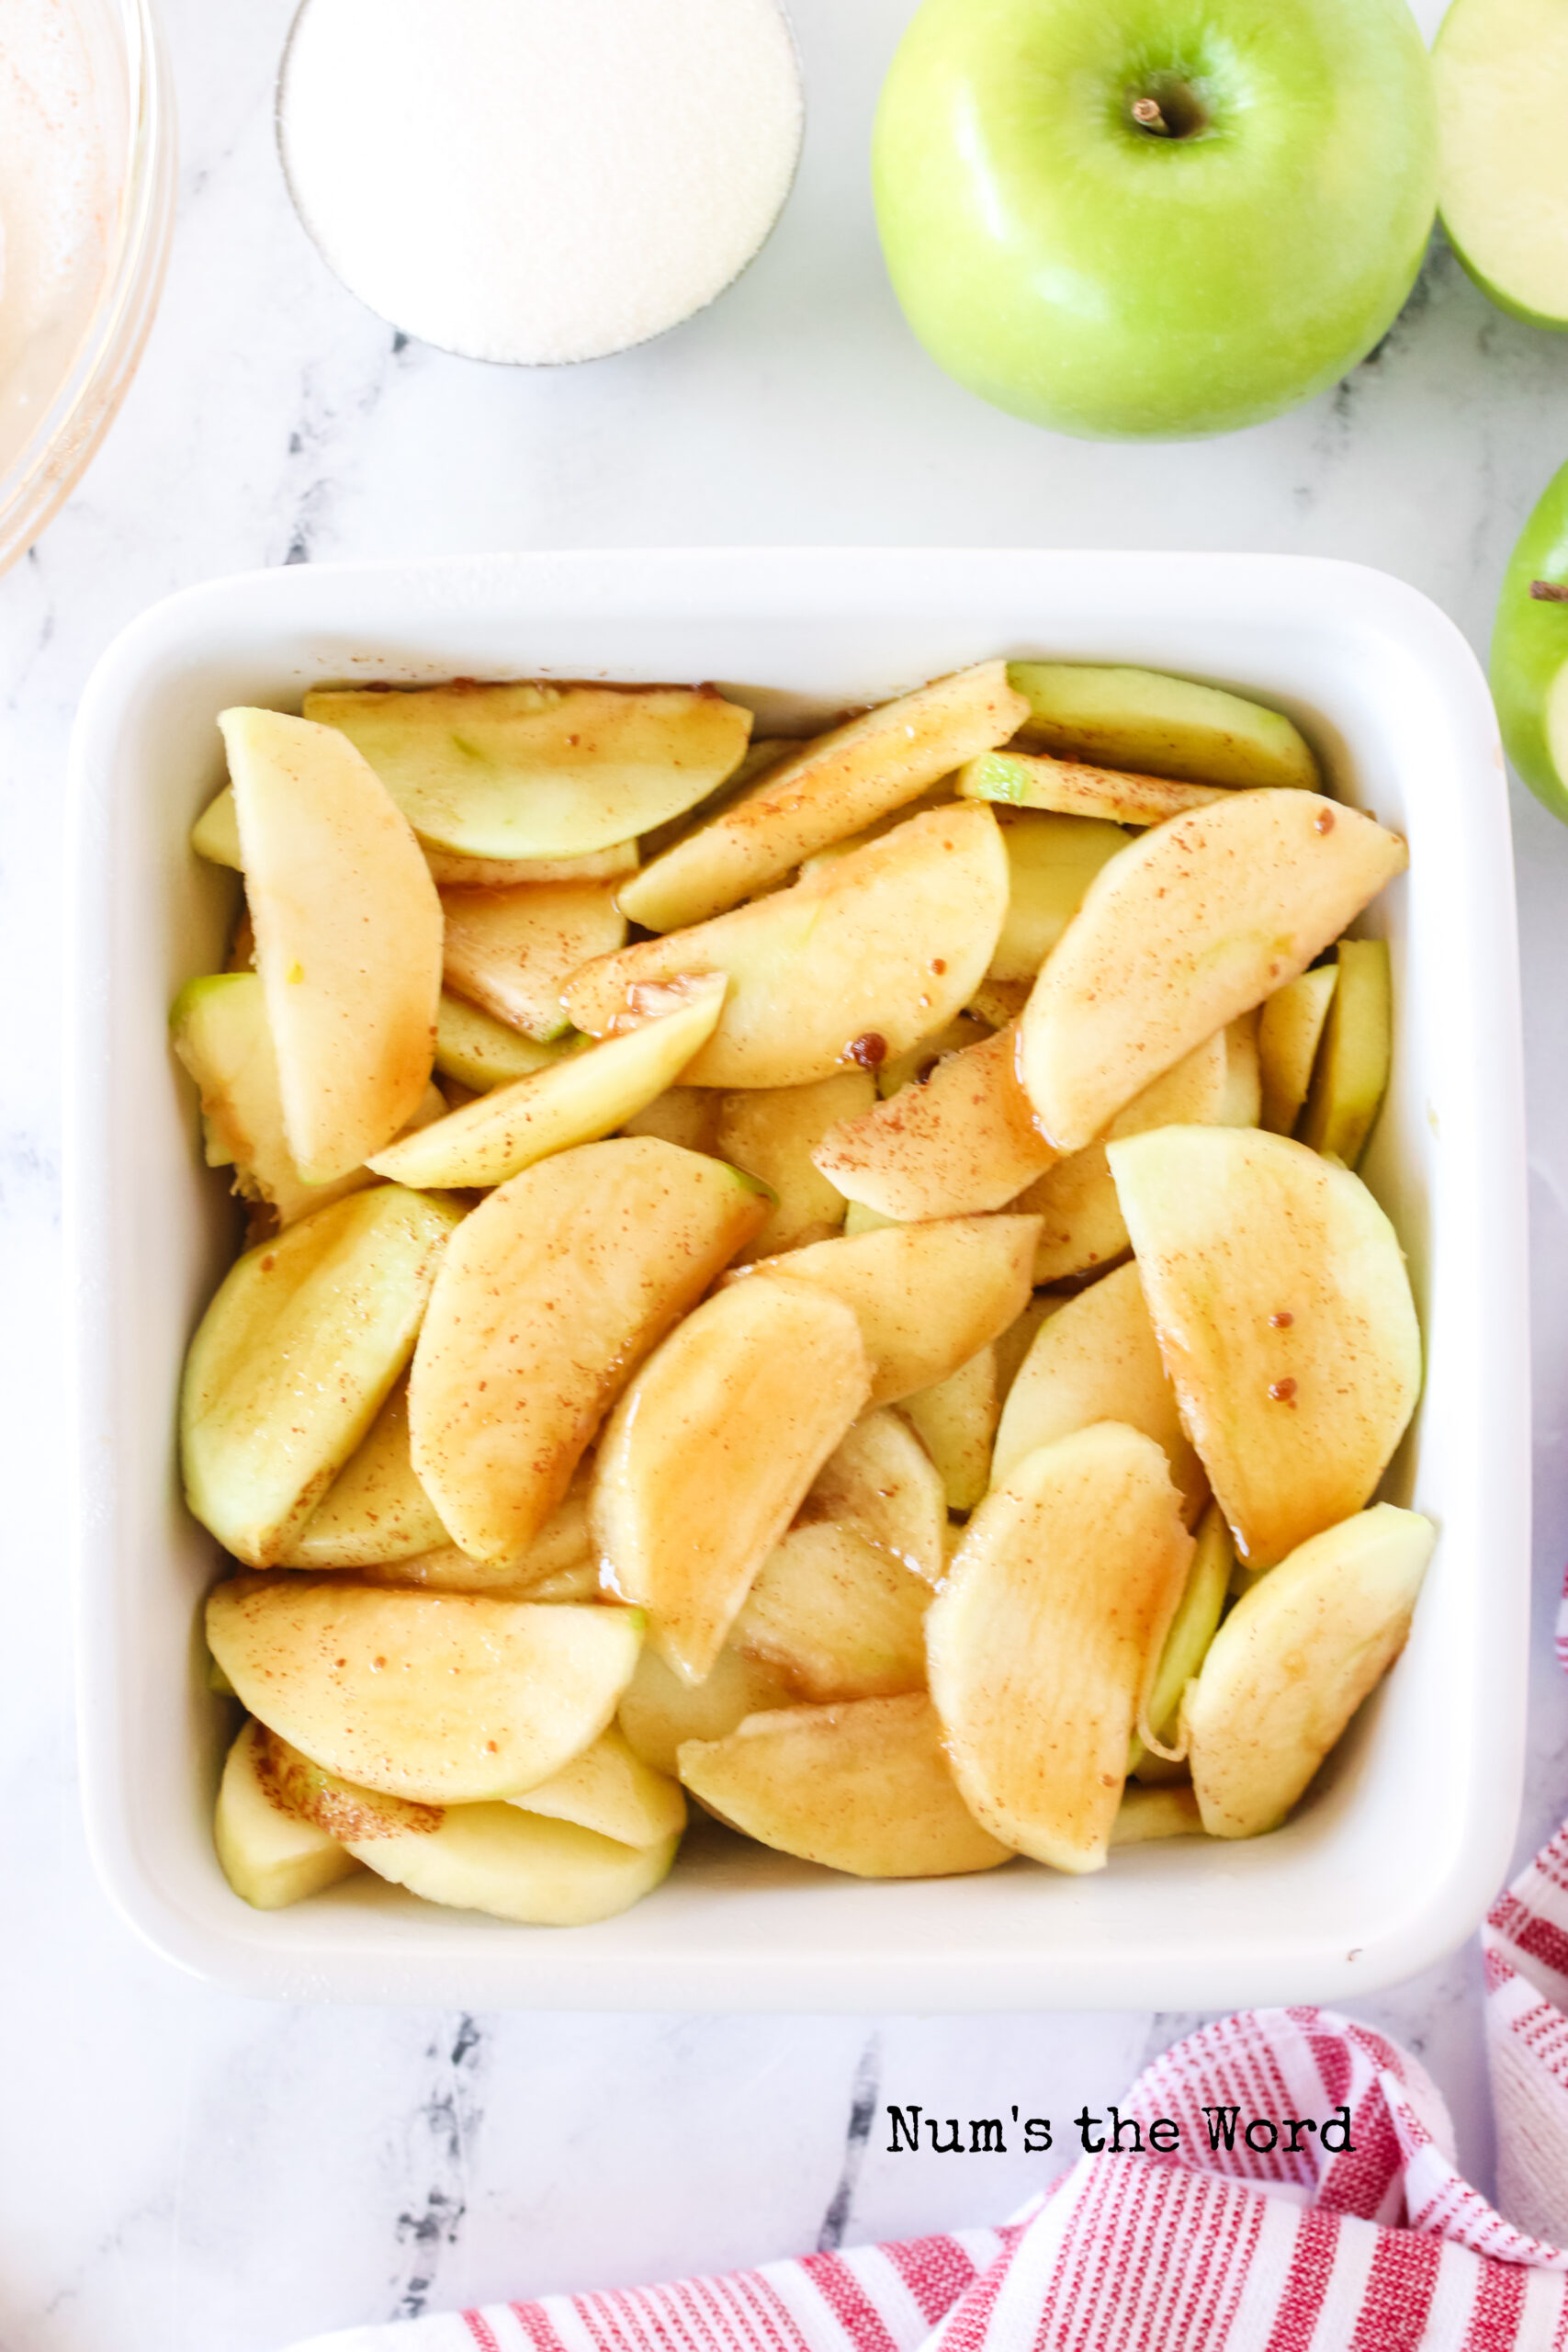 apples sliced and peeled in a casserole dish.